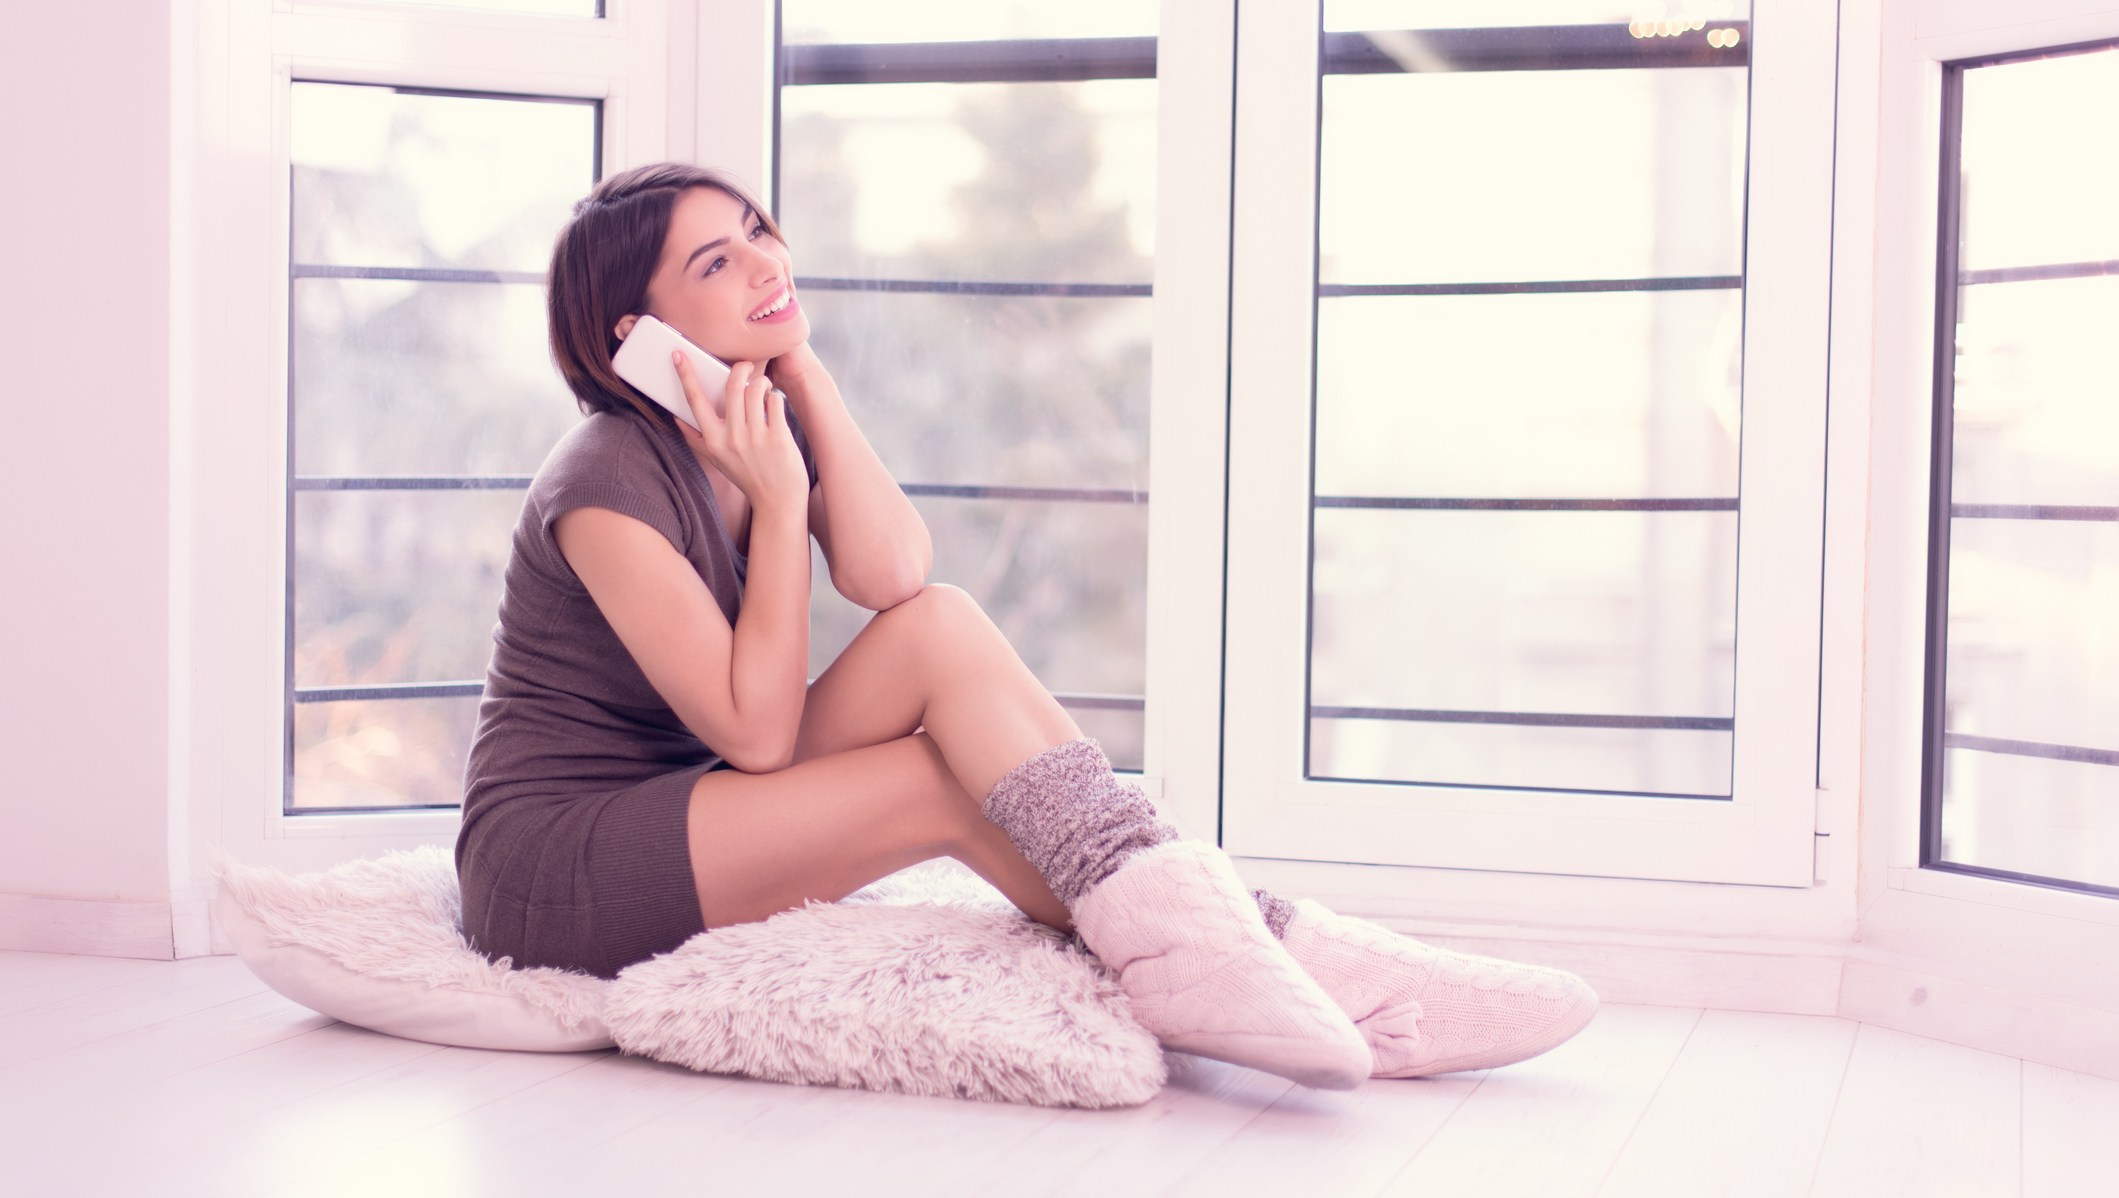 girl lounging in slippers